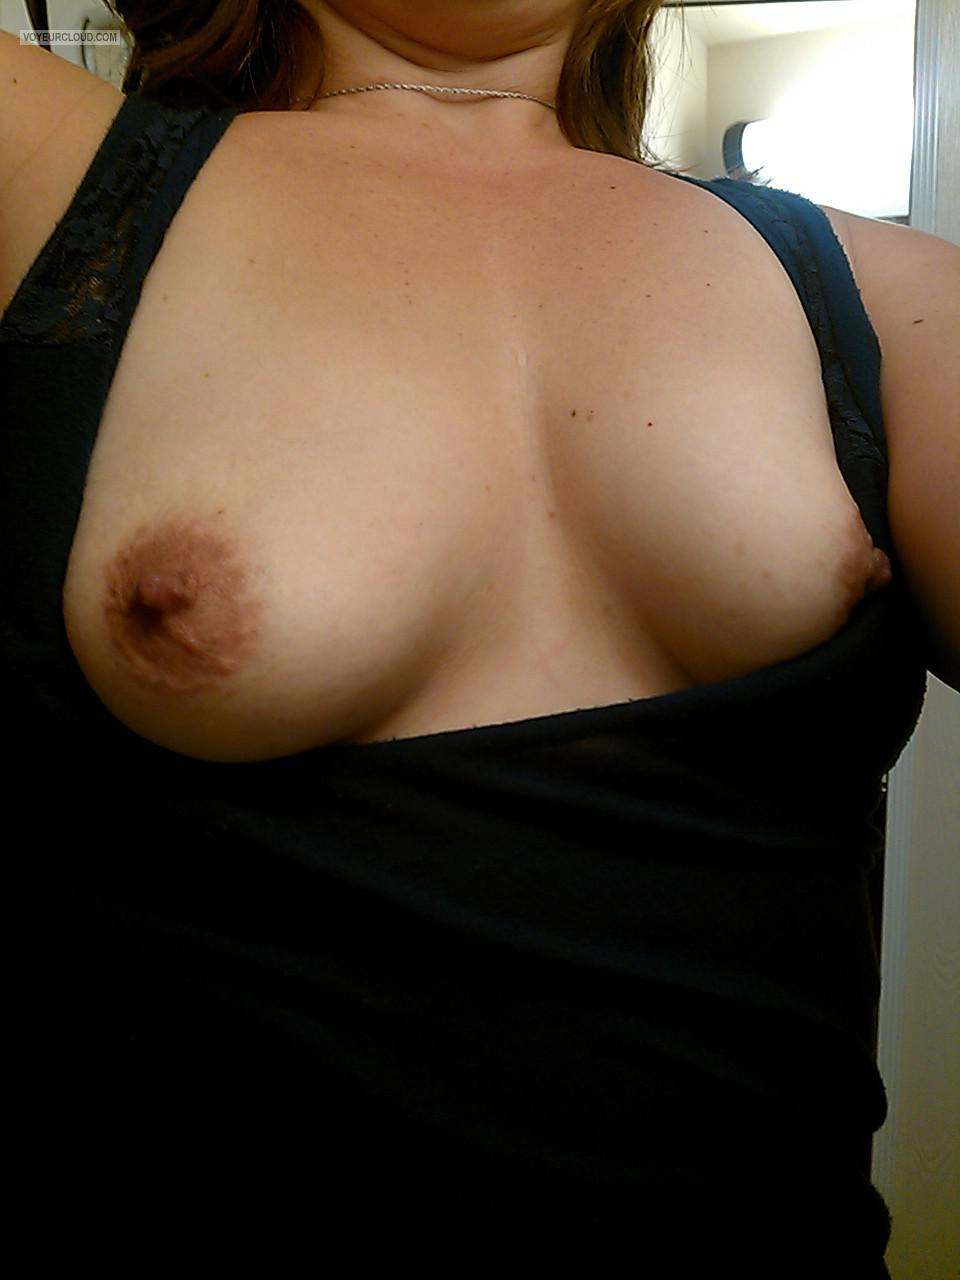 Tit Flash: My Small Tits (Selfie) - Babe5150 from United States